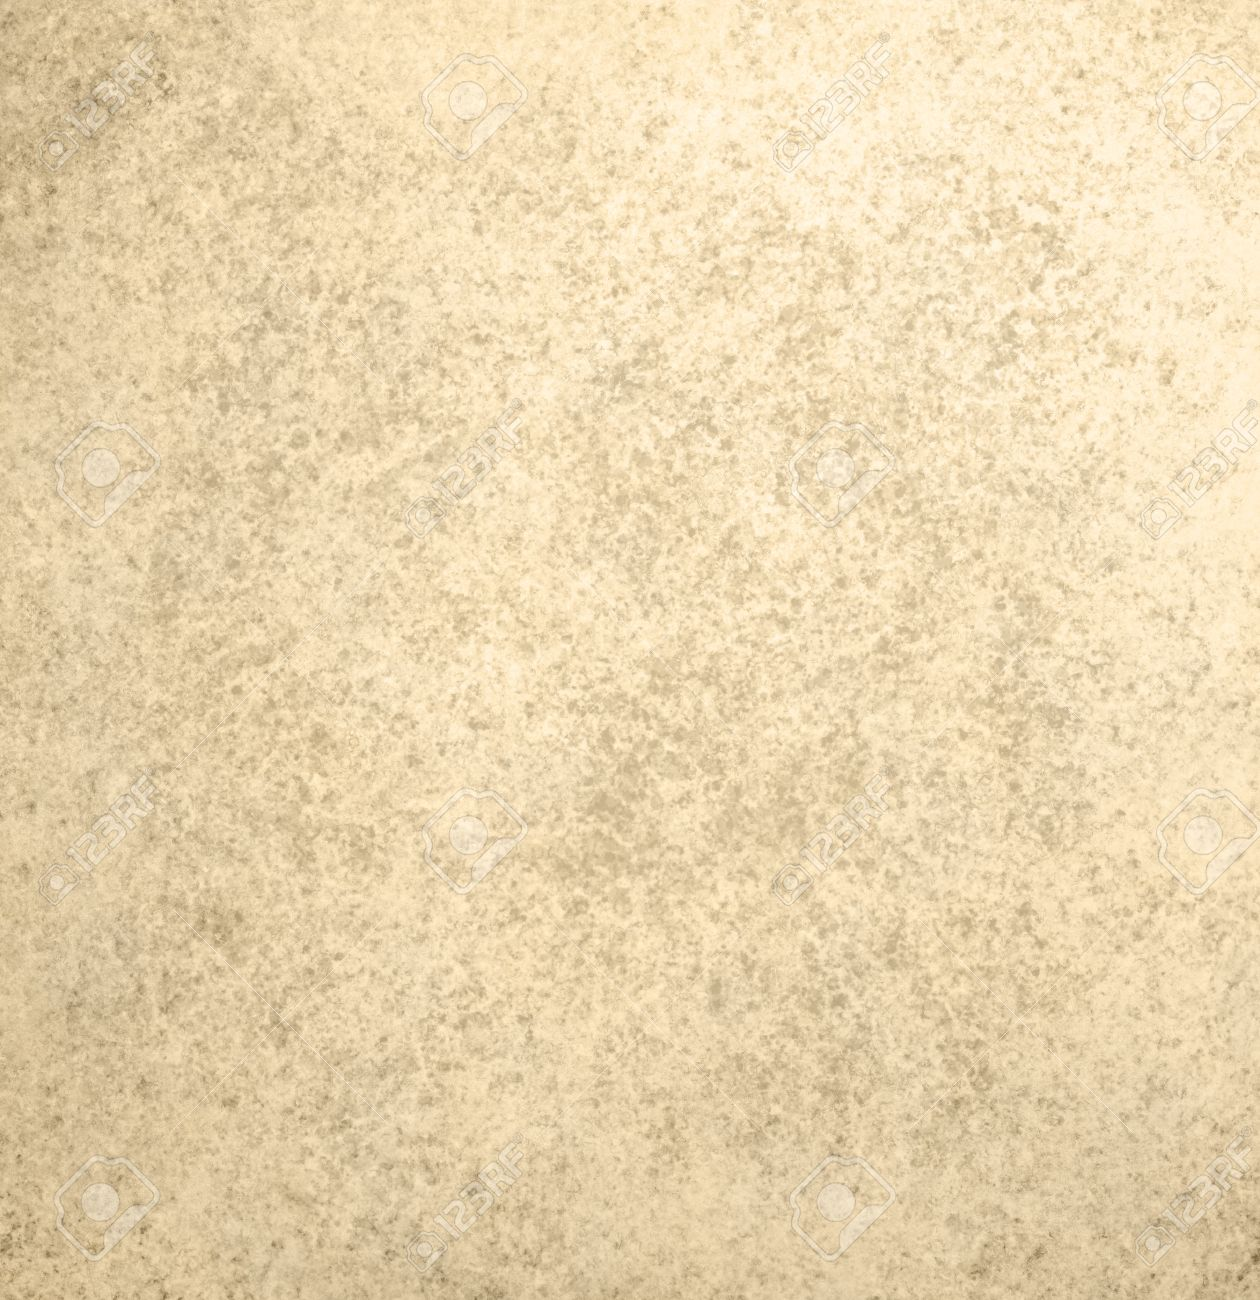 Faded Off White Background Texture Old Dirty Paper Light Beige Stock Photo